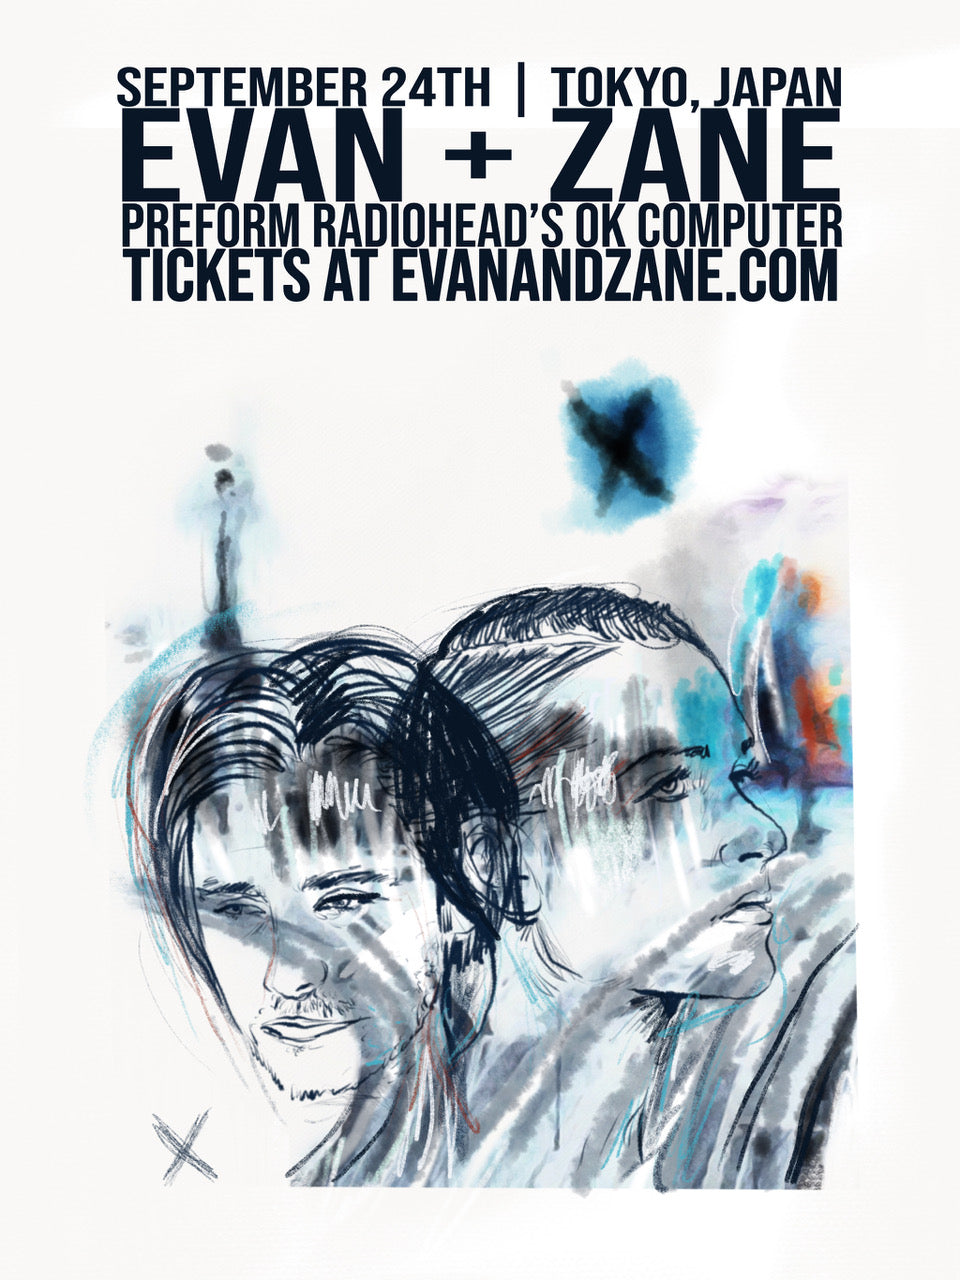 EVAN + ZANE: OK Computer | Tokyo, Japan | September 24th, 2018 | PERSONALLY AUTOGRAPHED by Evan Rachel Wood + Zane Carney (Only 50 Available)